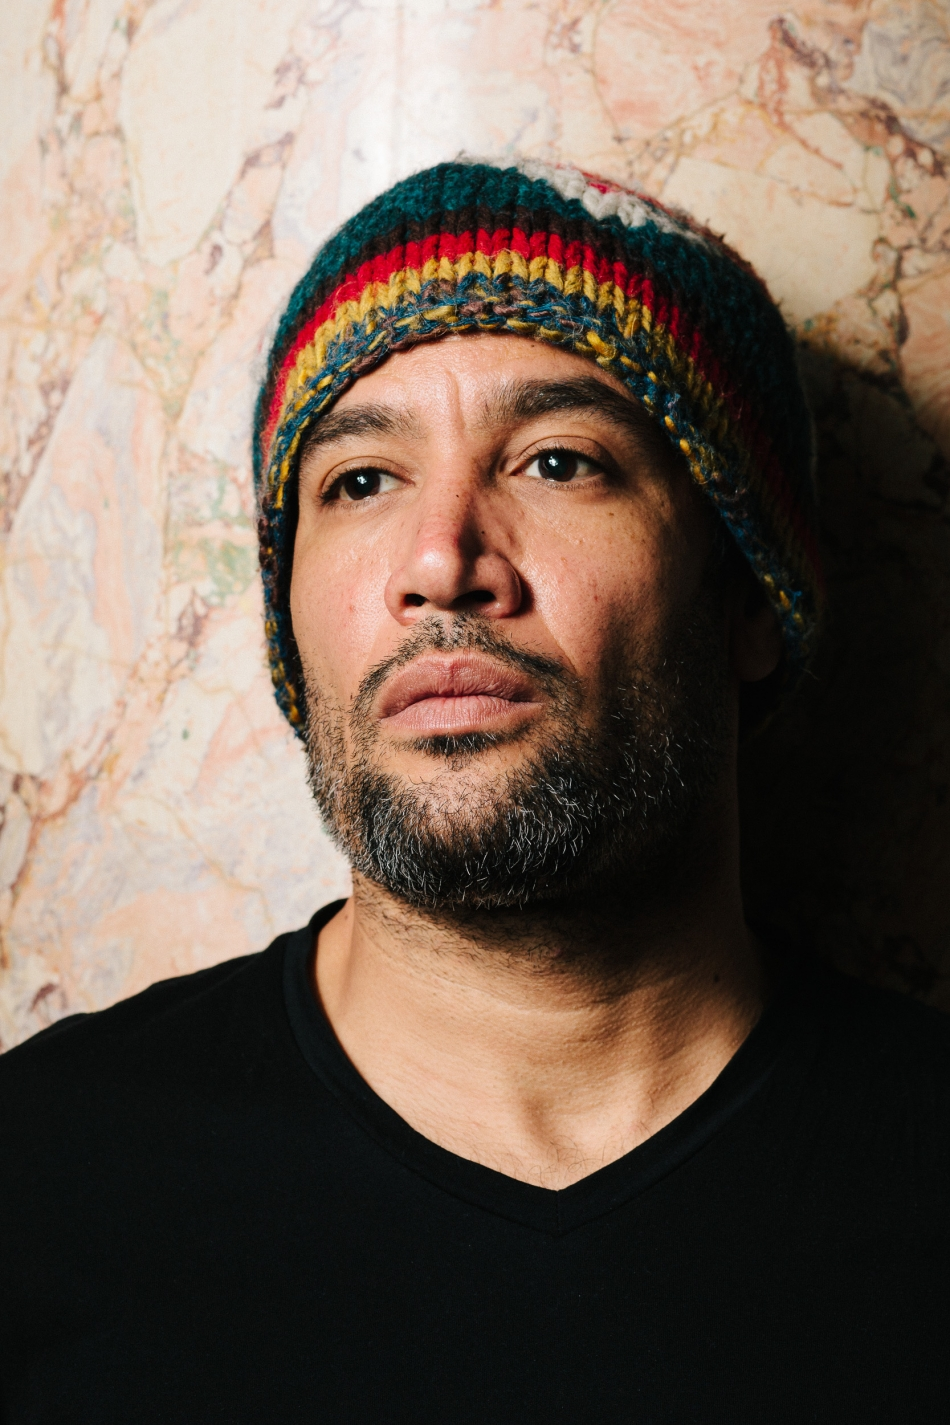 Ben Harper (photo by Morten Aagaard Krogh / mortenkrogh.com)